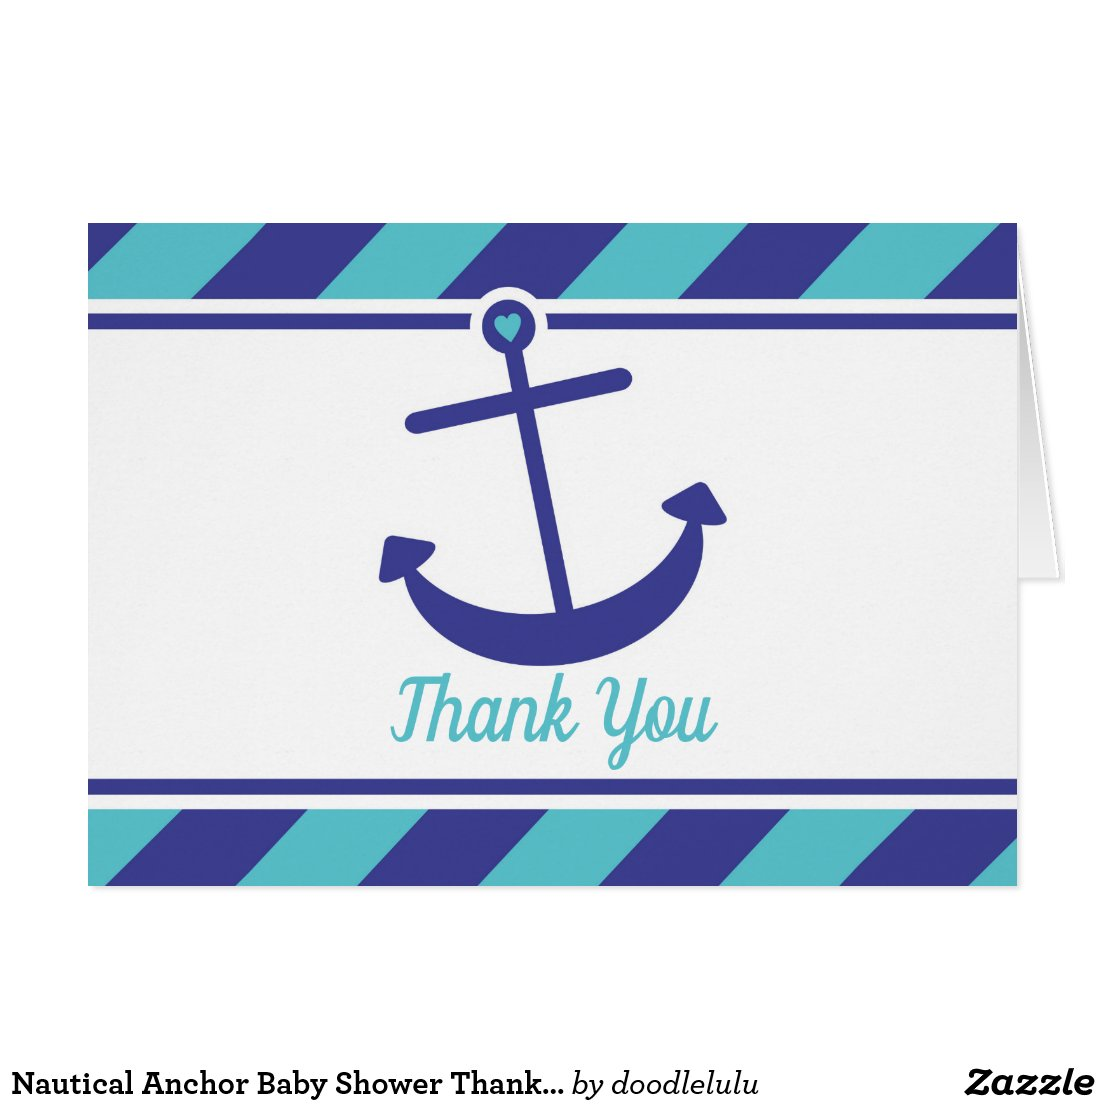 Nautical Anchor Baby Shower Thank You card